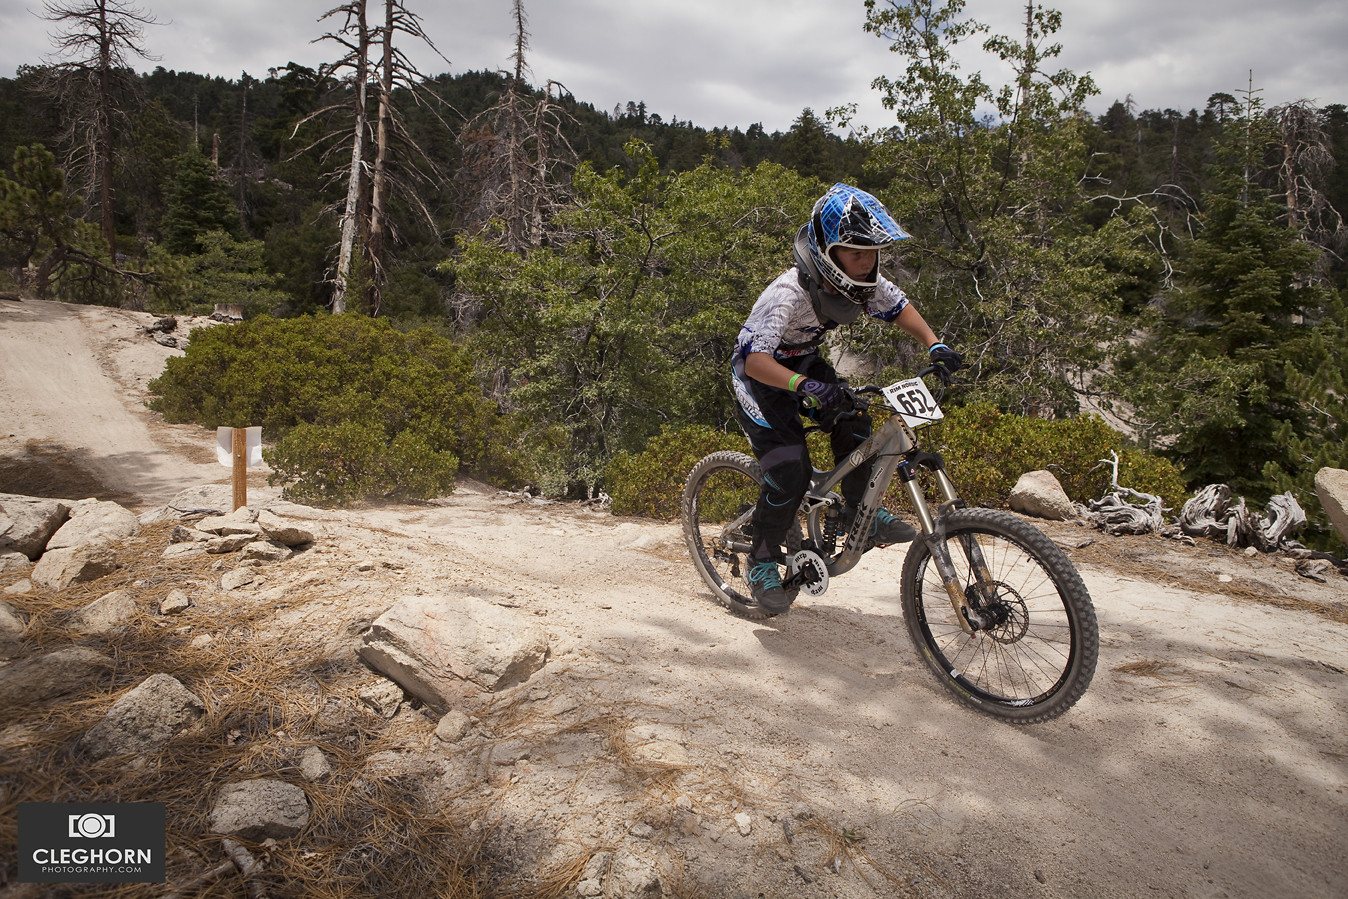 MG 0531 - Cleghorn Photography - Mountain Biking Pictures - Vital MTB